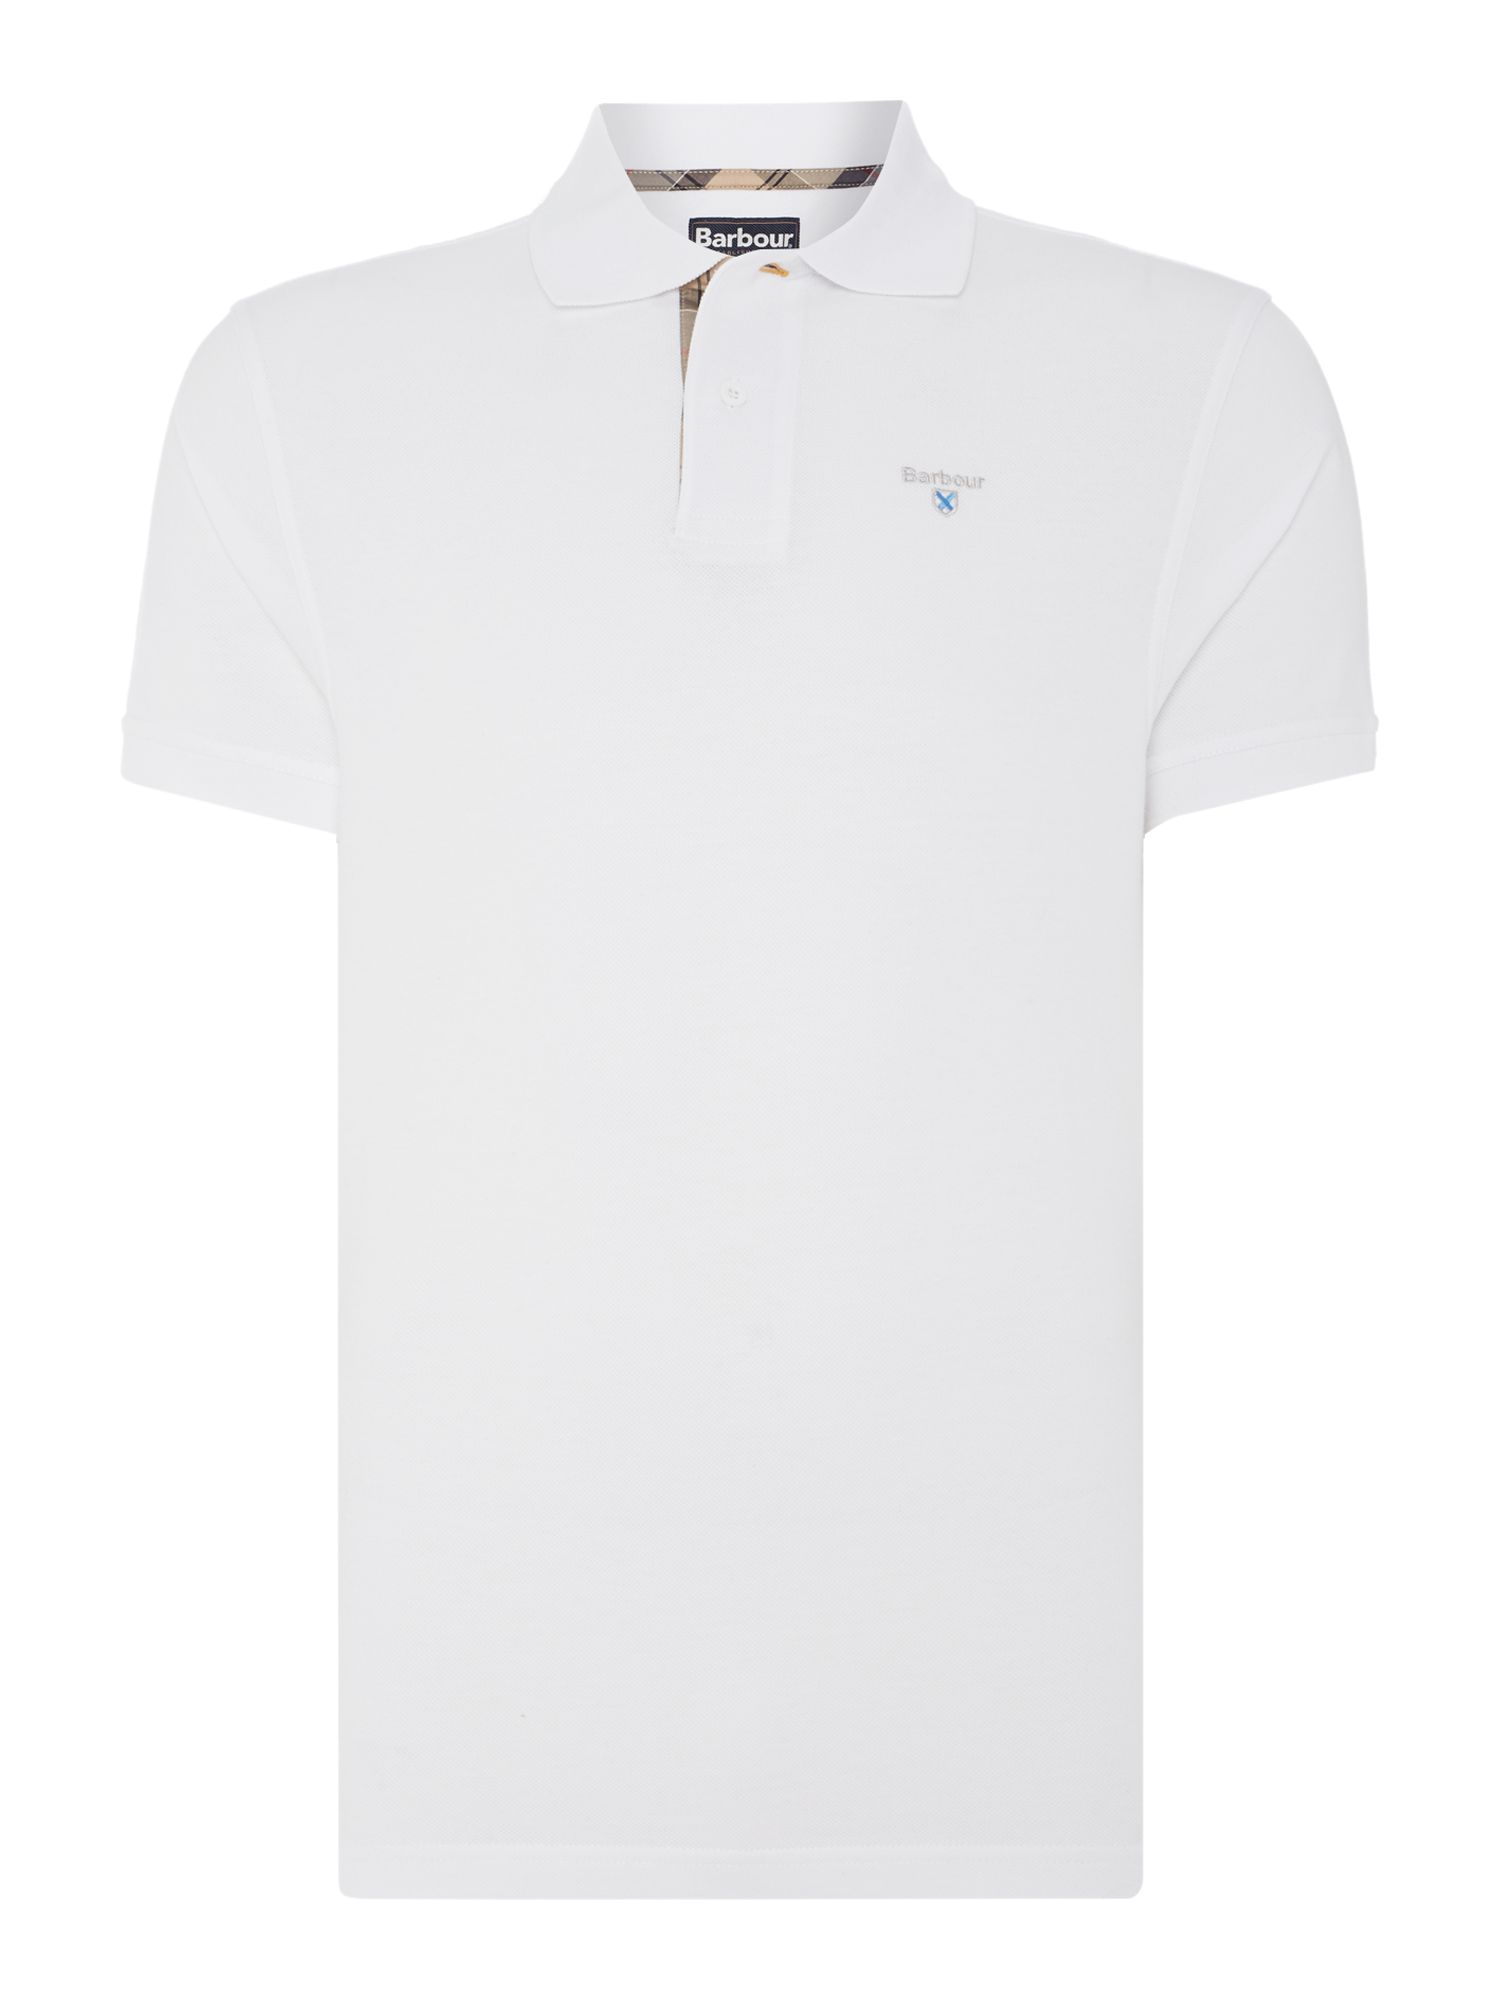 Men's Barbour Tartan Pique Polo, White